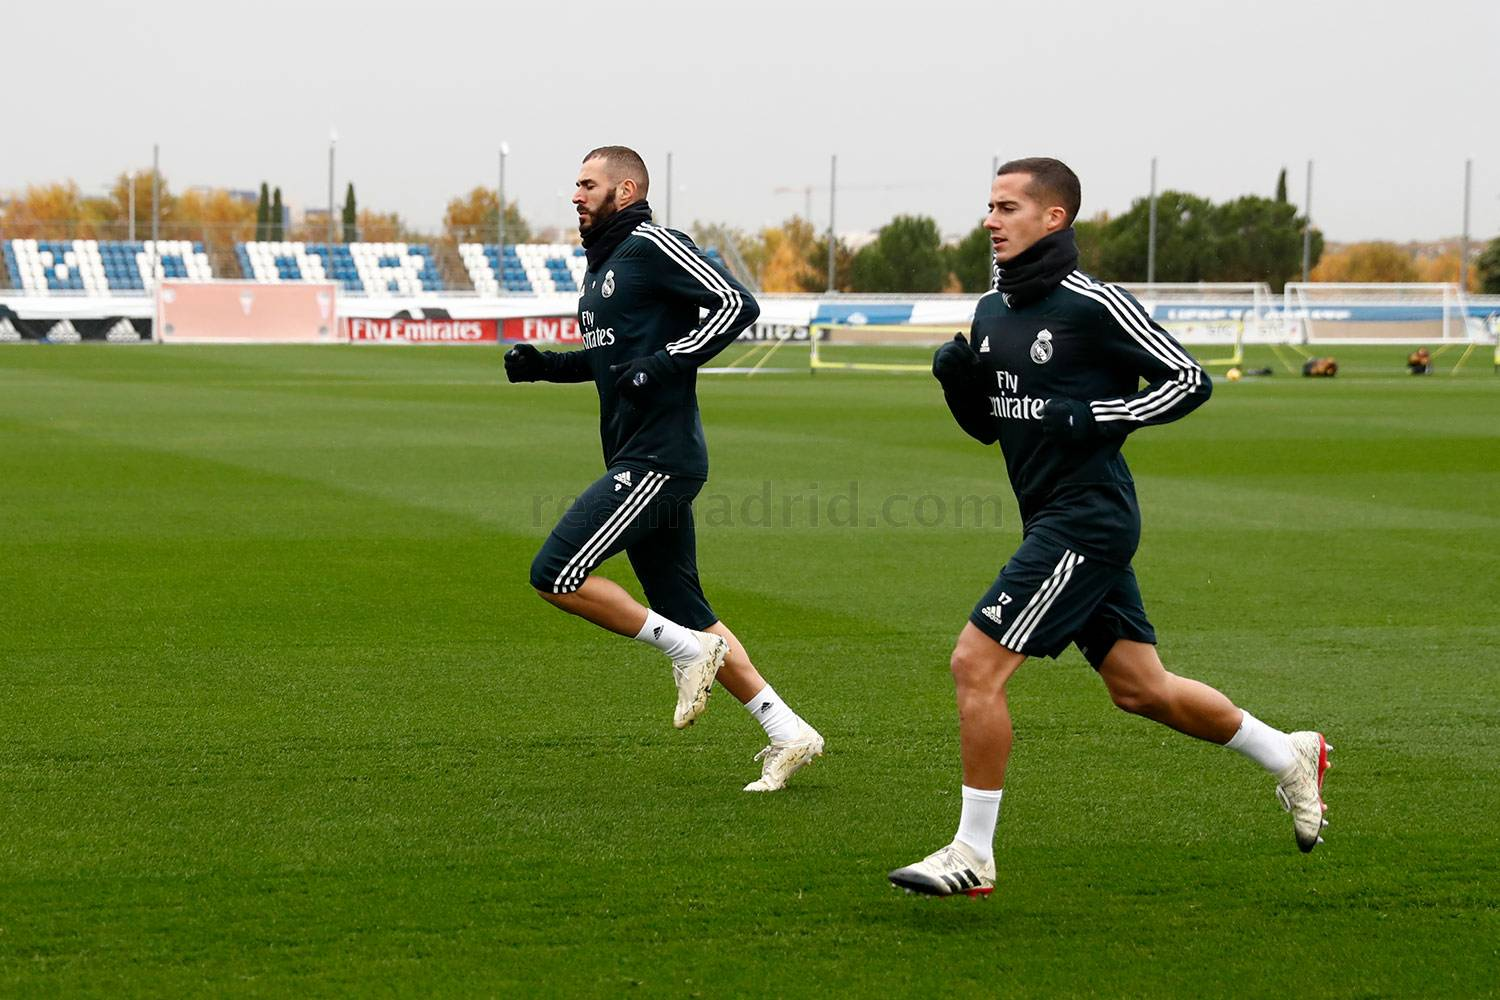 Real Madrid - Entrenamiento del Real Madrid - 20-11-2018